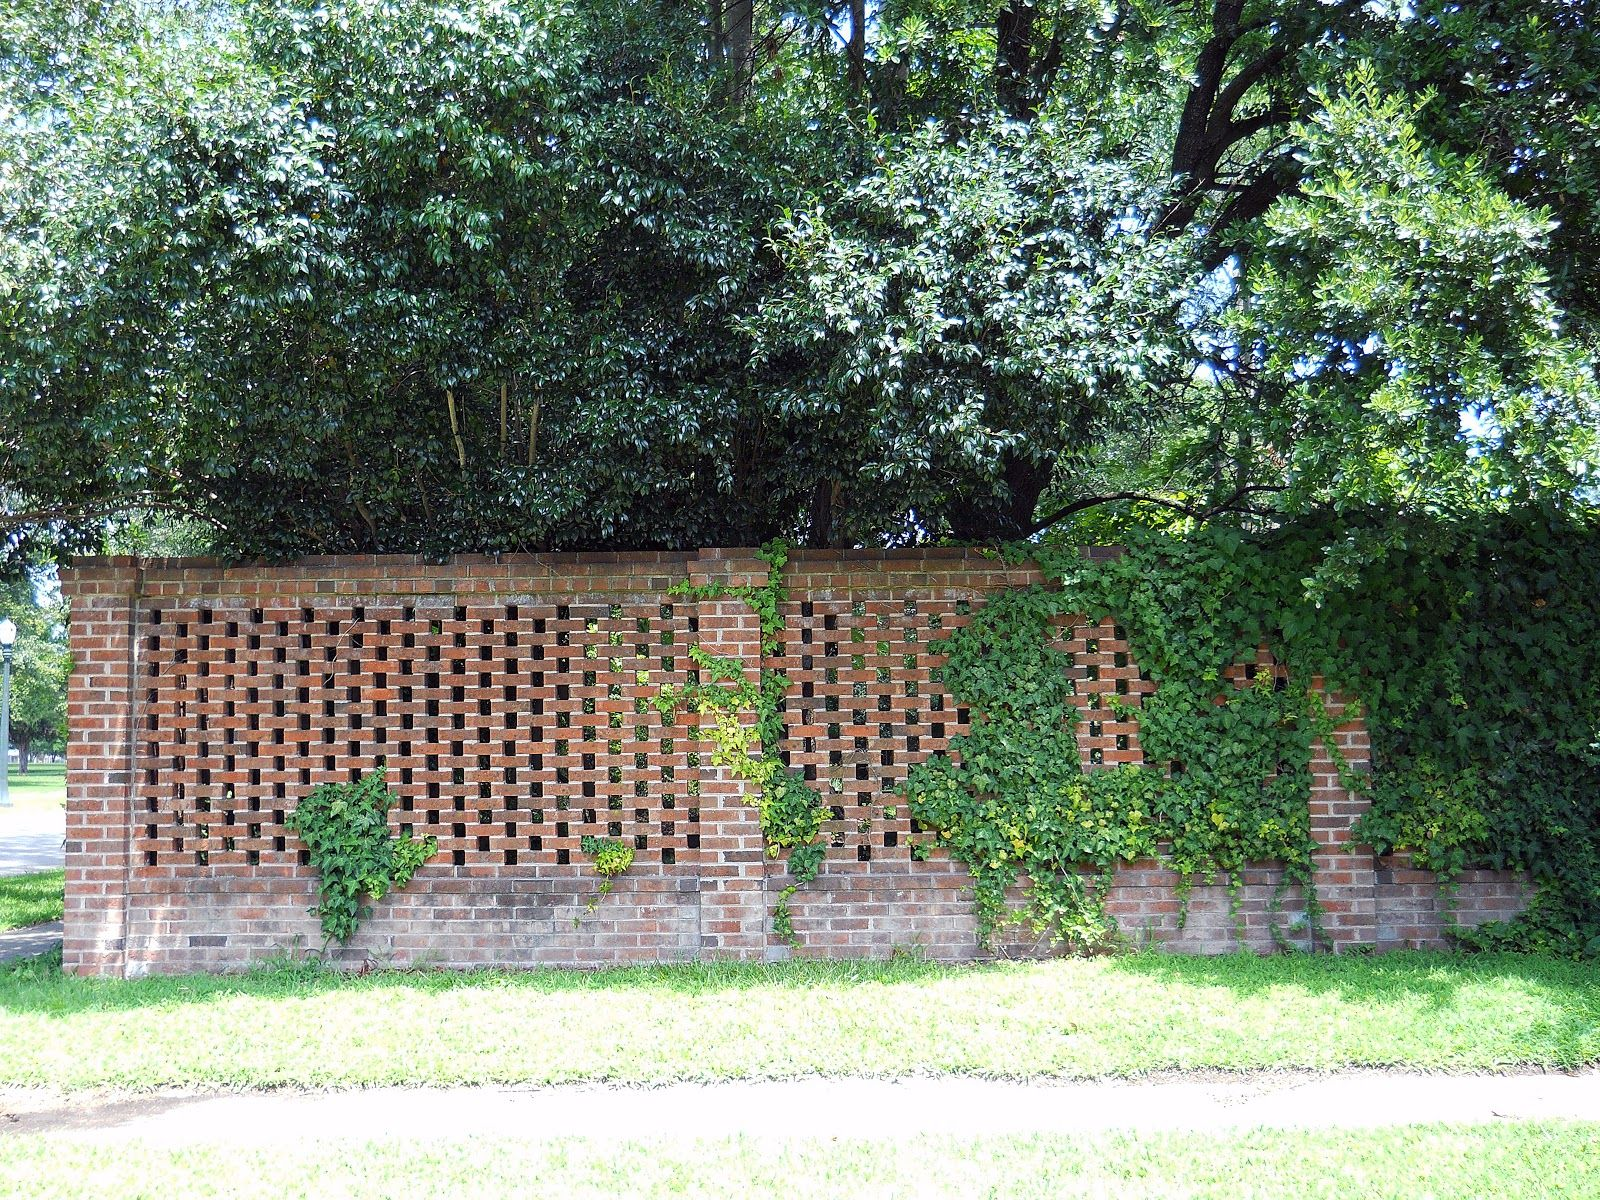 Decorative Brick Fence | Makes you wonder what lies beyond the gate ...